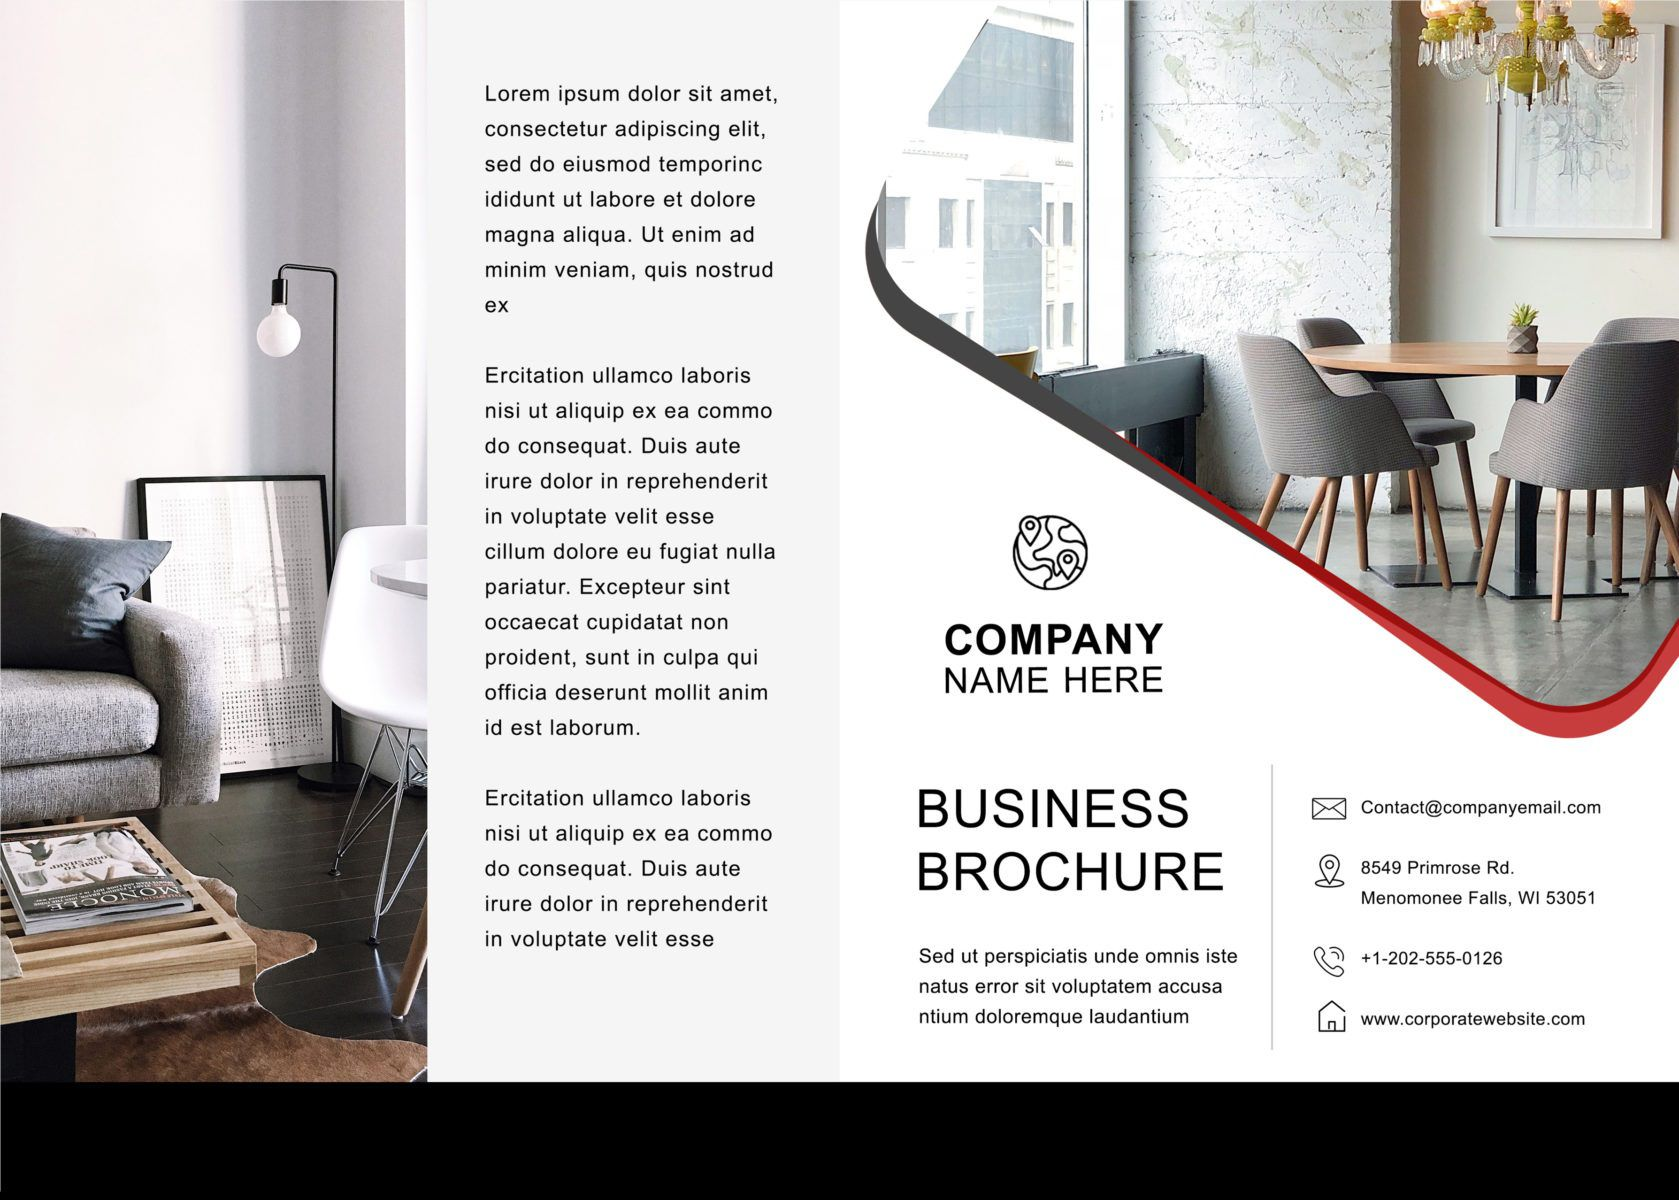 004 Outstanding Brochure Template Free Download Photo  Microsoft Publisher Corporate Psd For Adobe IllustratorFull